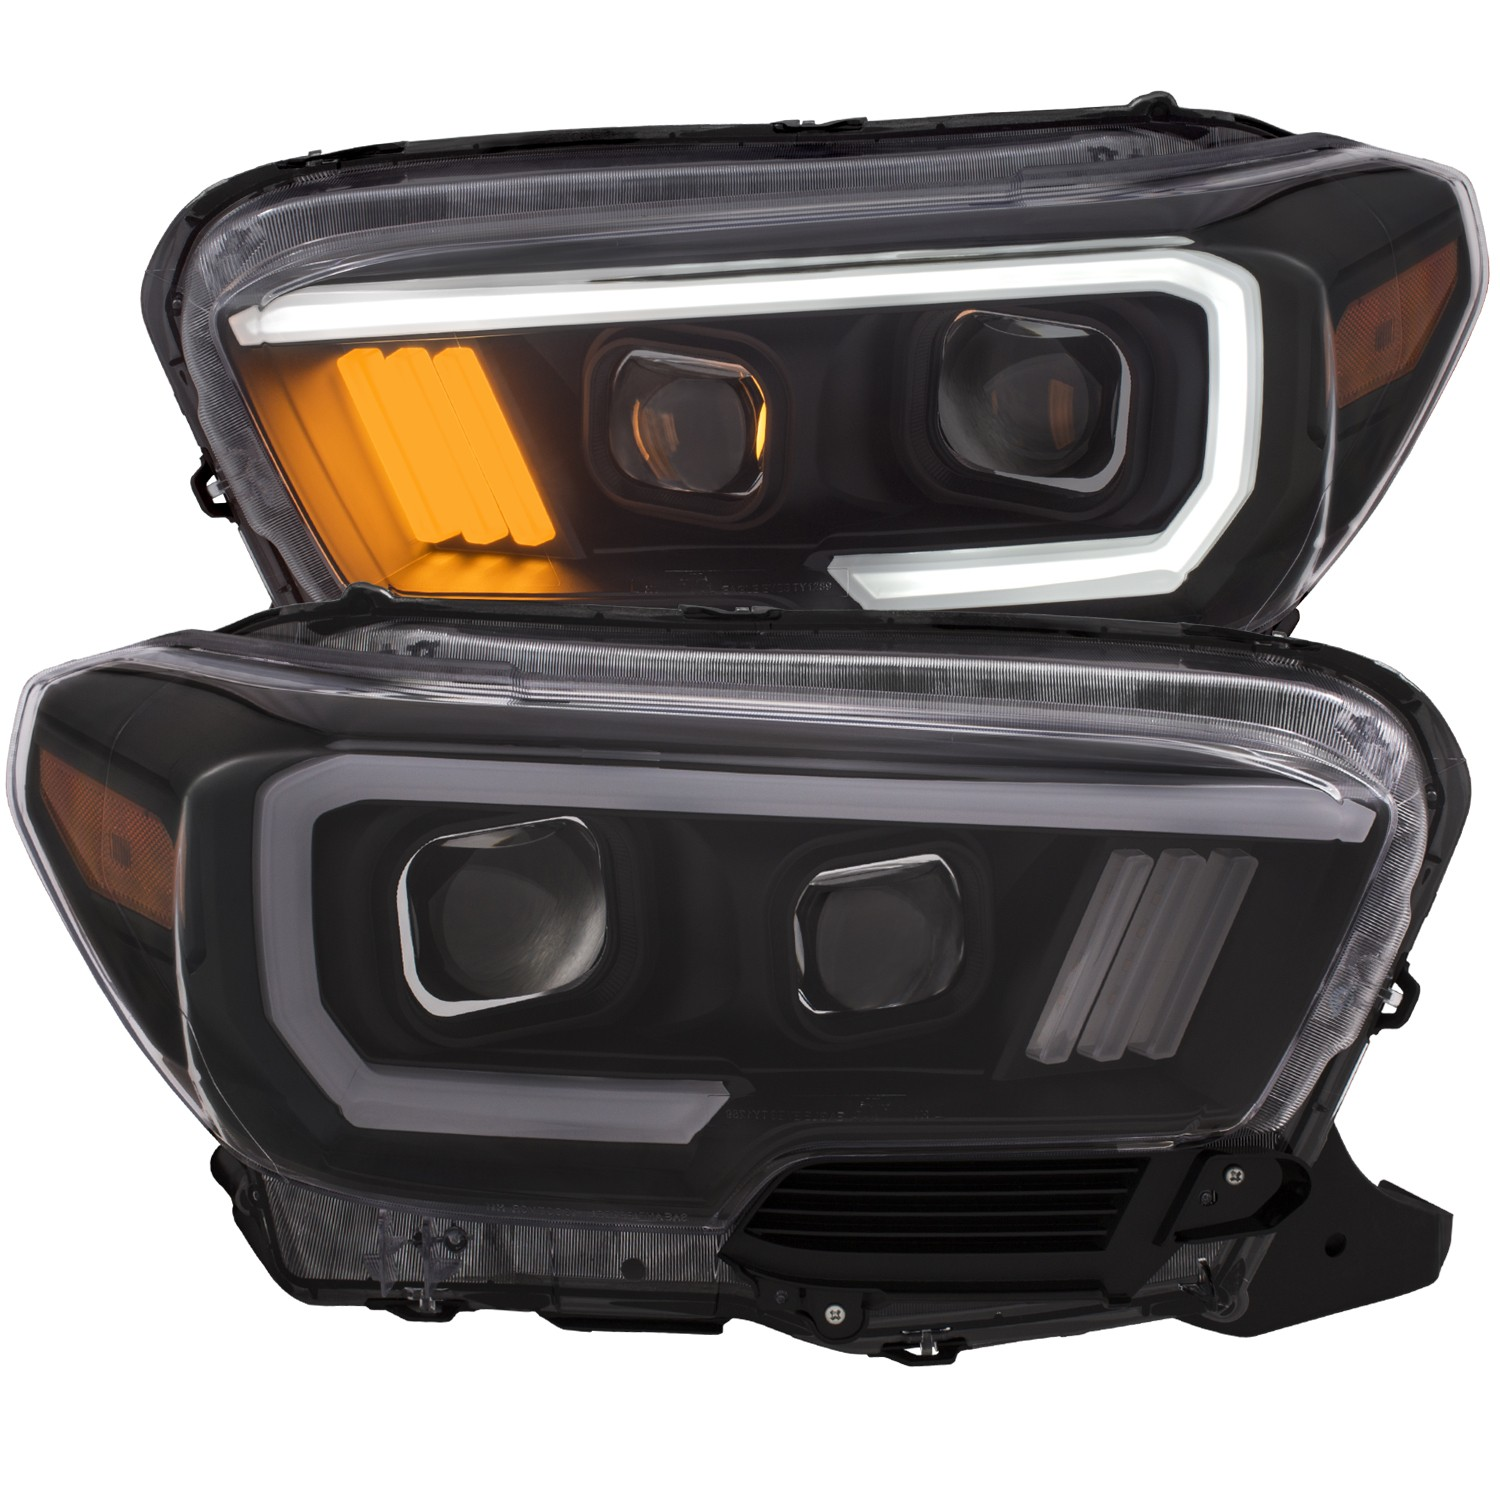 *NEW* Tacoma 16-18 Projector Plank Style Headlight Black W/ Amber